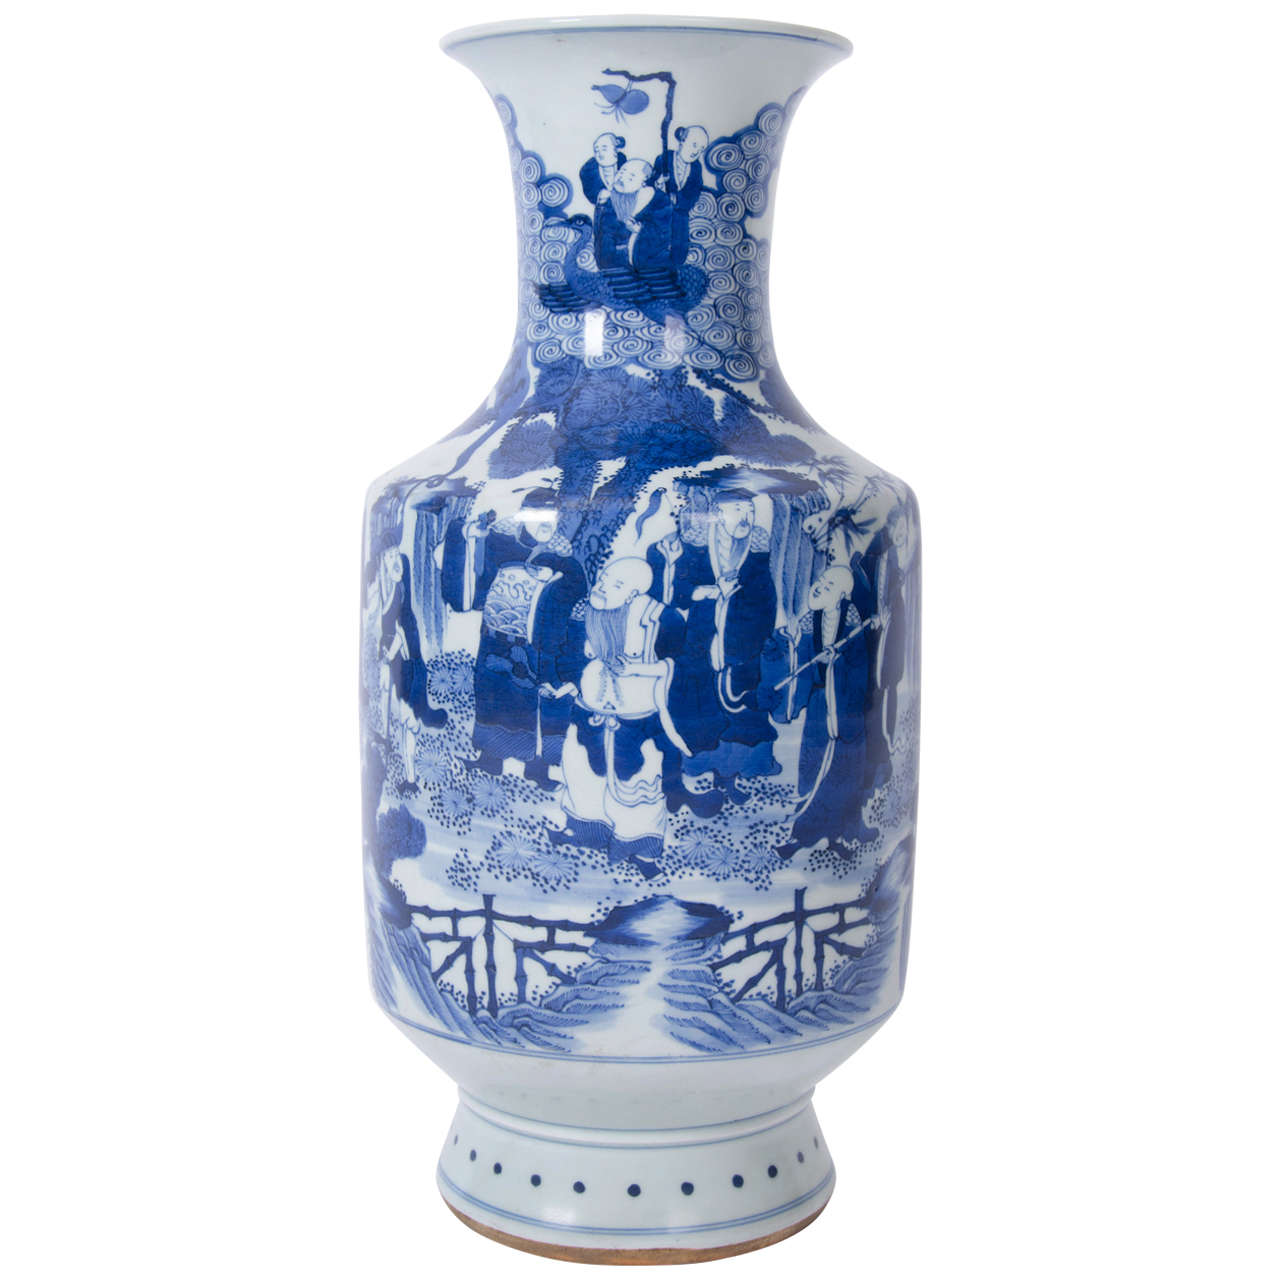 18th century chinese blue and white porcelain vase kangxi period 18th century chinese blue and white porcelain vase kangxi period reviewsmspy